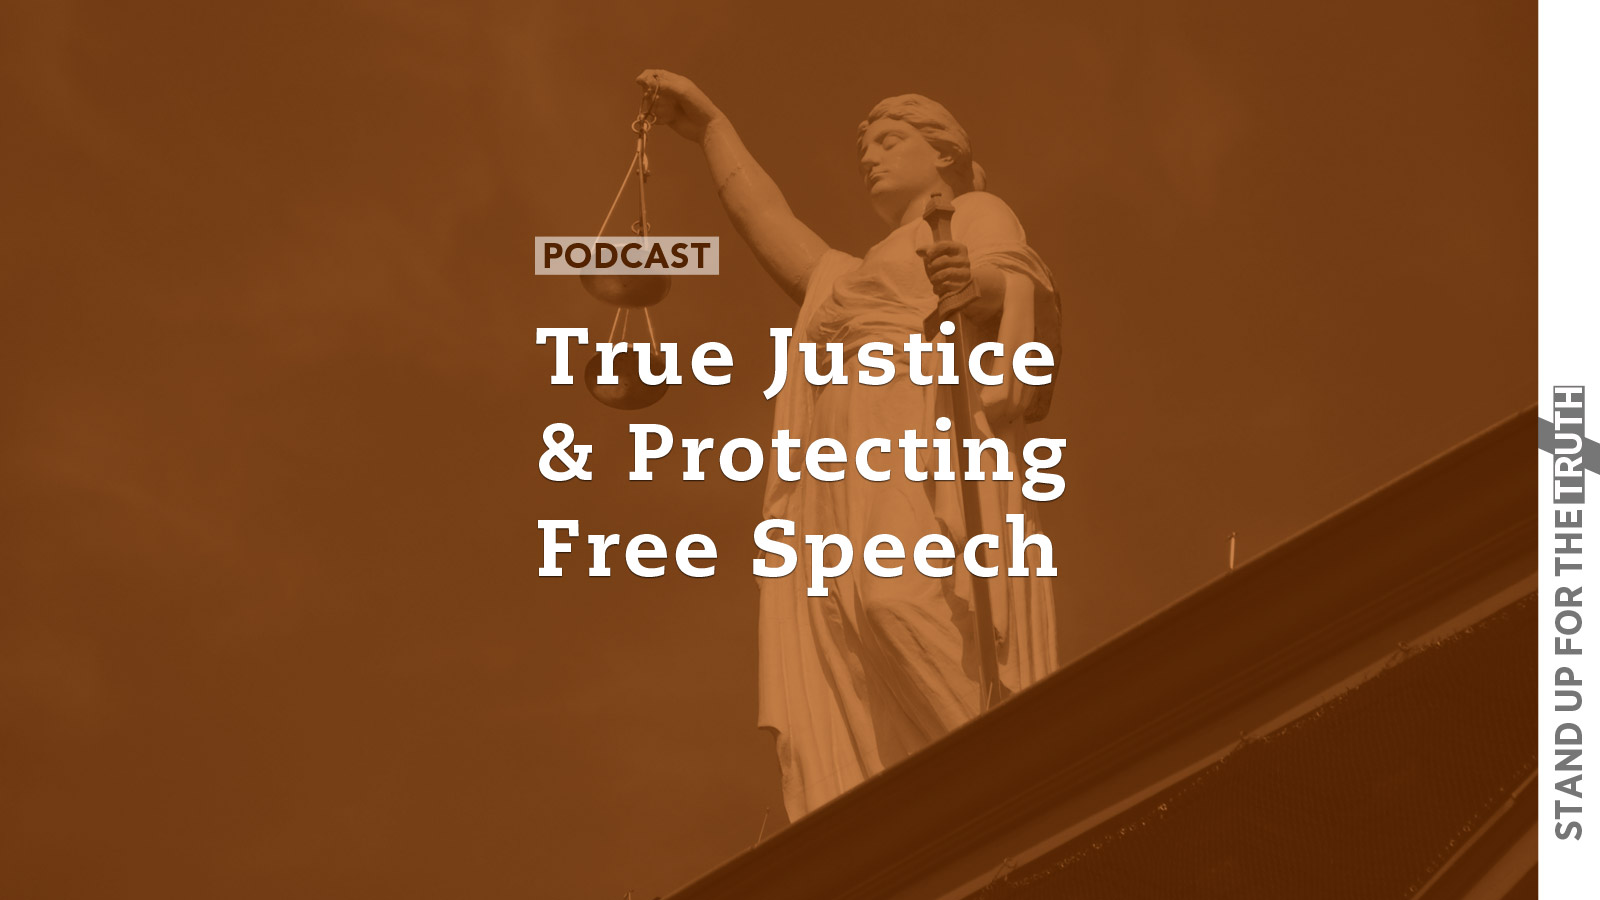 True Justice And Protecting Free Speech Stand Up For The